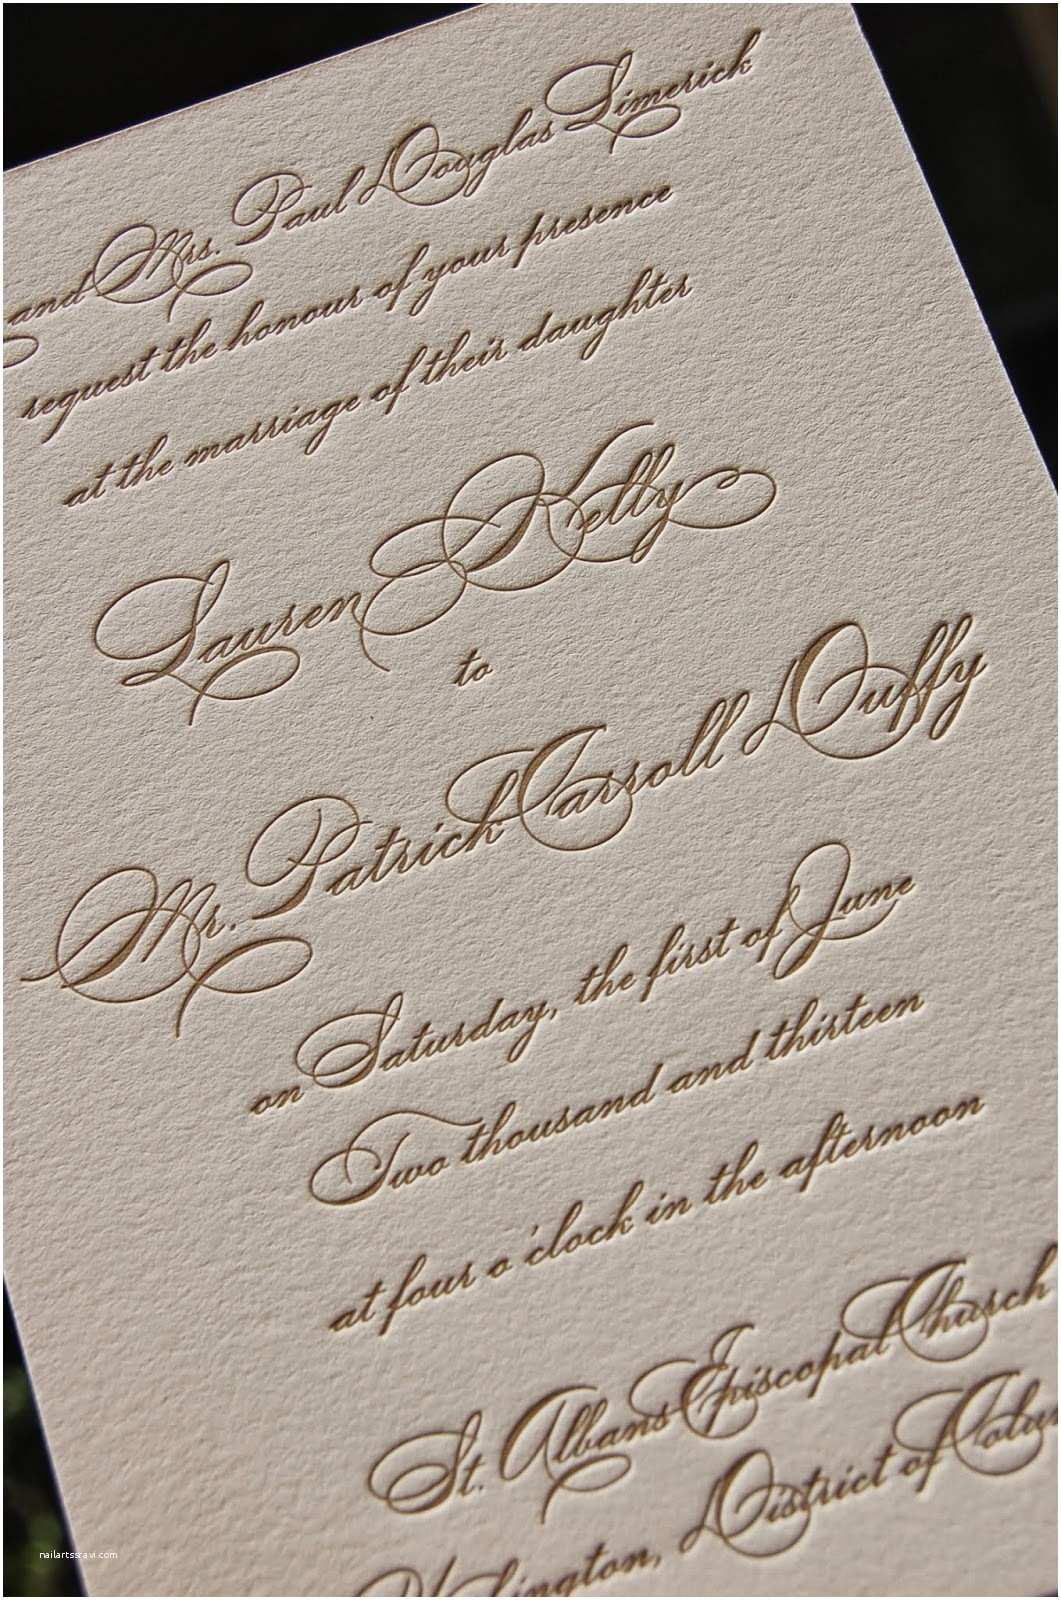 Calligraphy Pen for Wedding Invitations Dancing Pen Calligraphy Letterpress Wedding Invitation